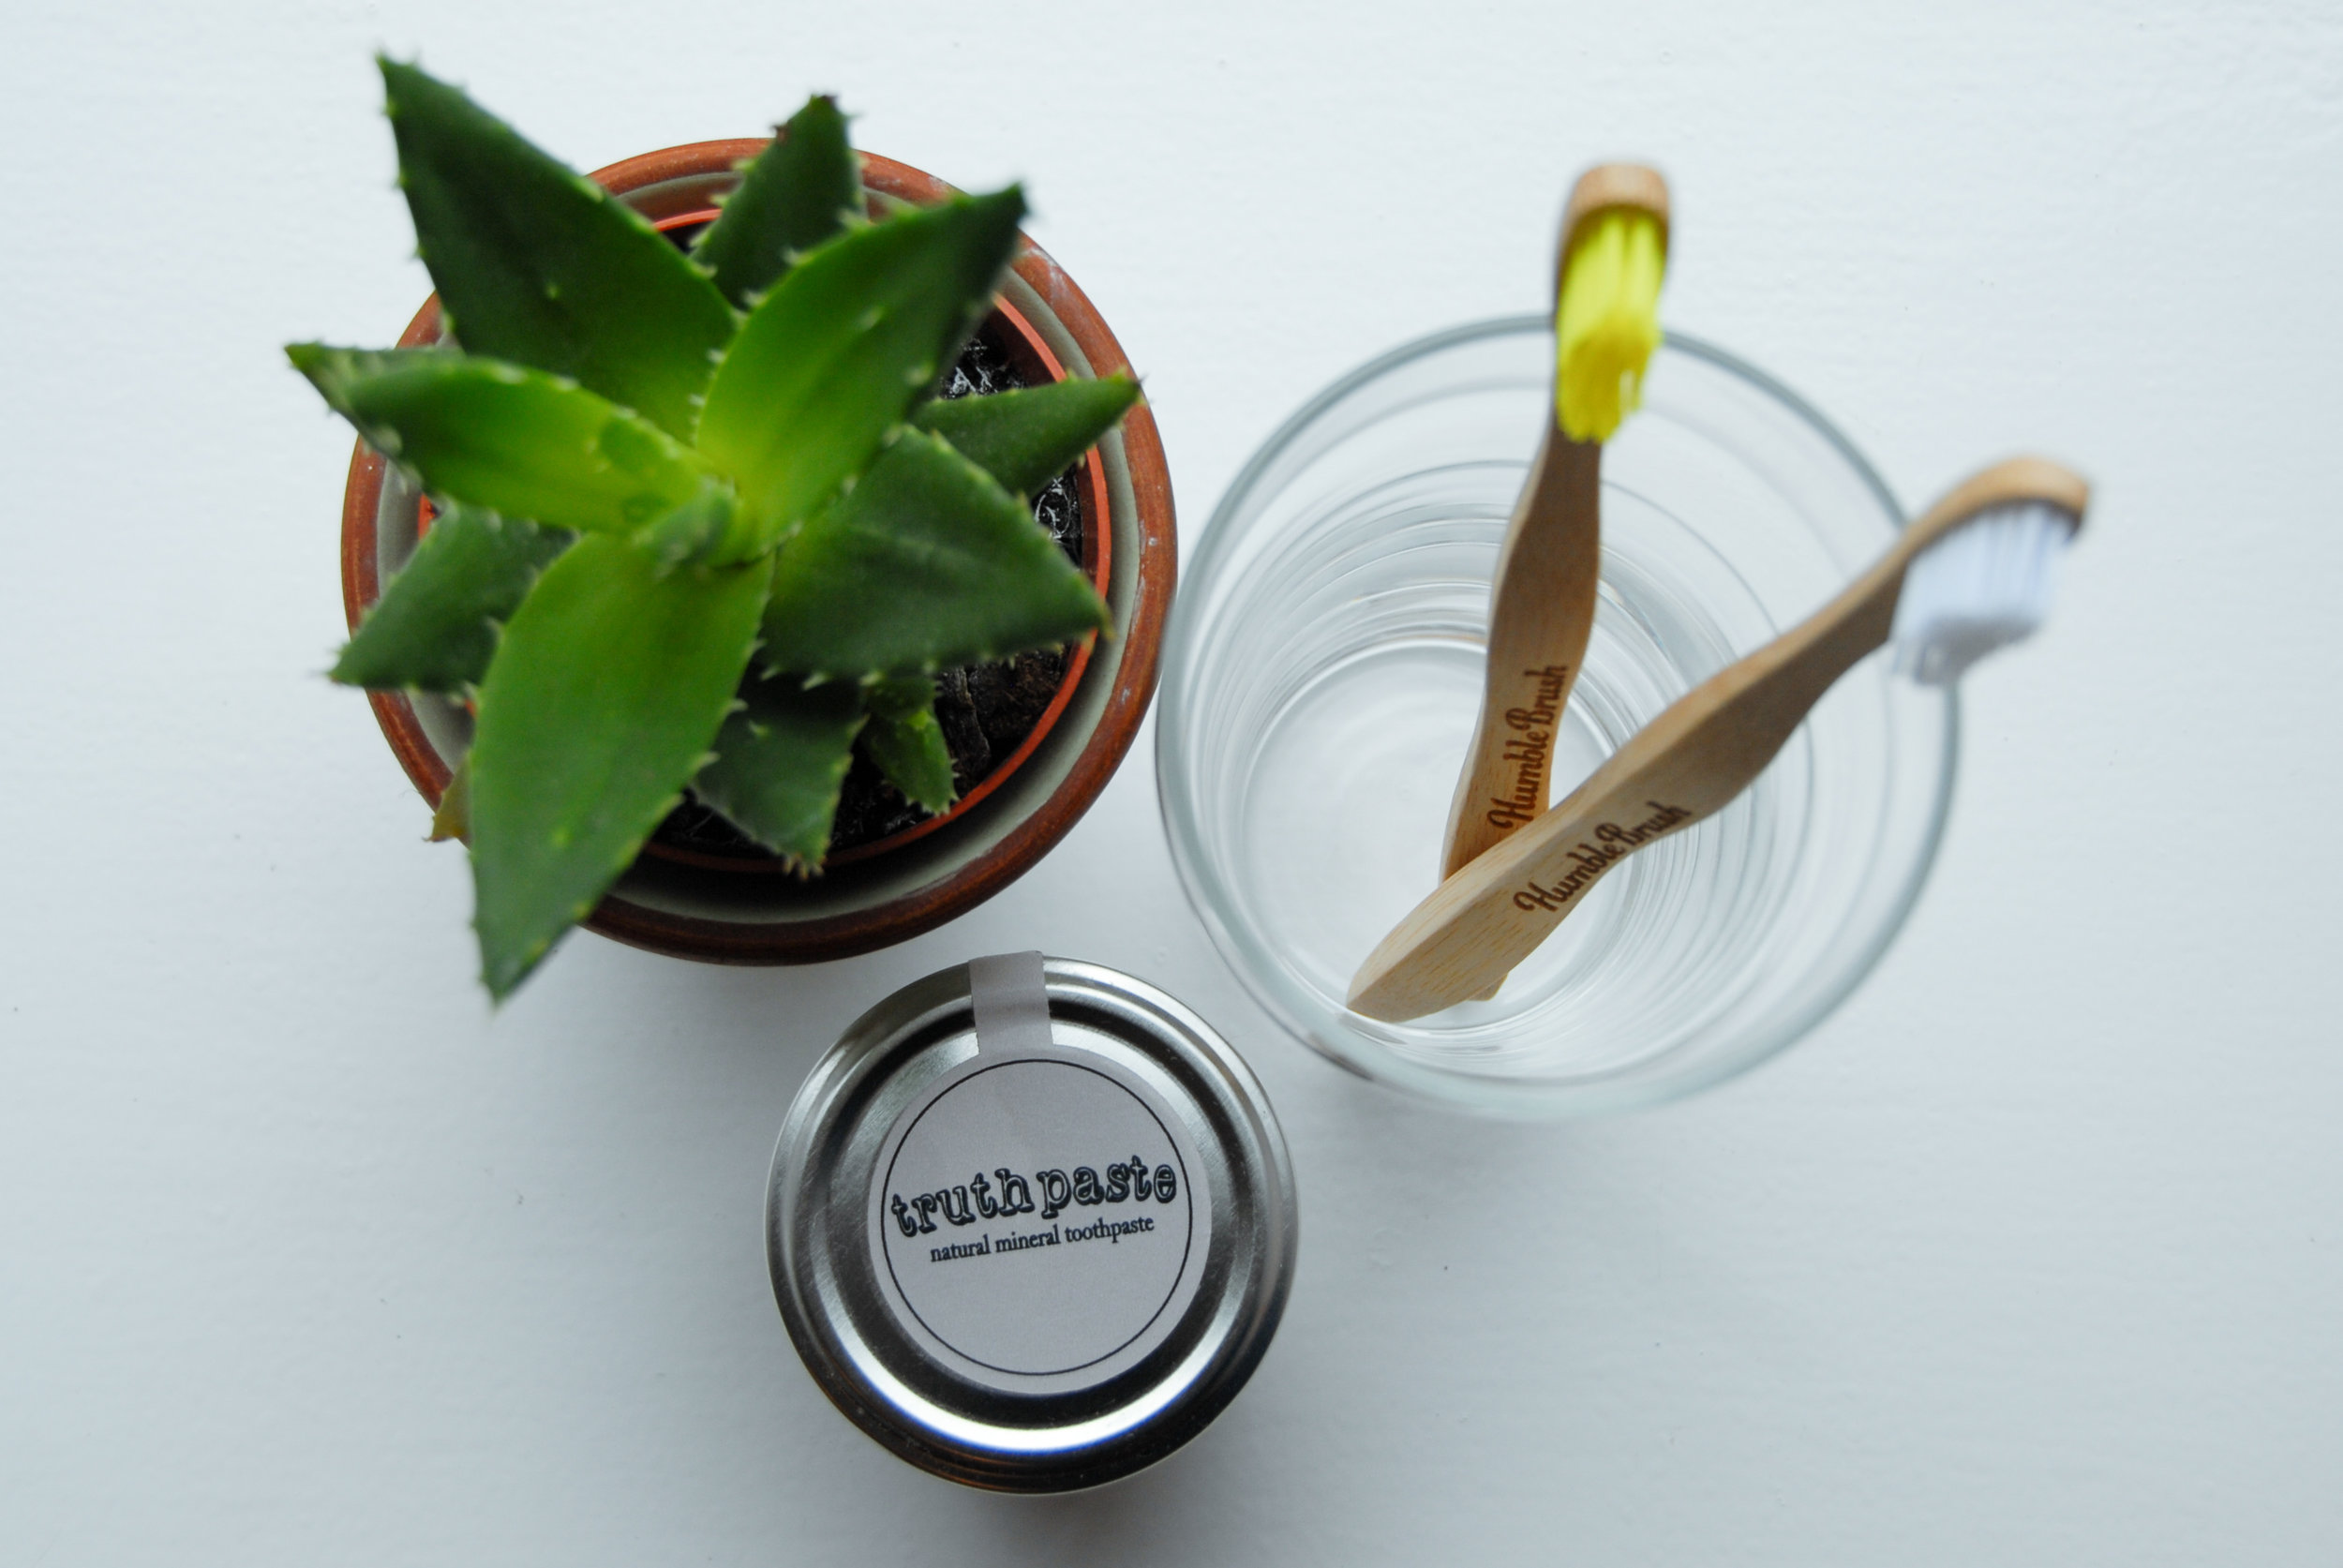 Bamboo Toothbrush and Bentonite Clay Based Toothpaste